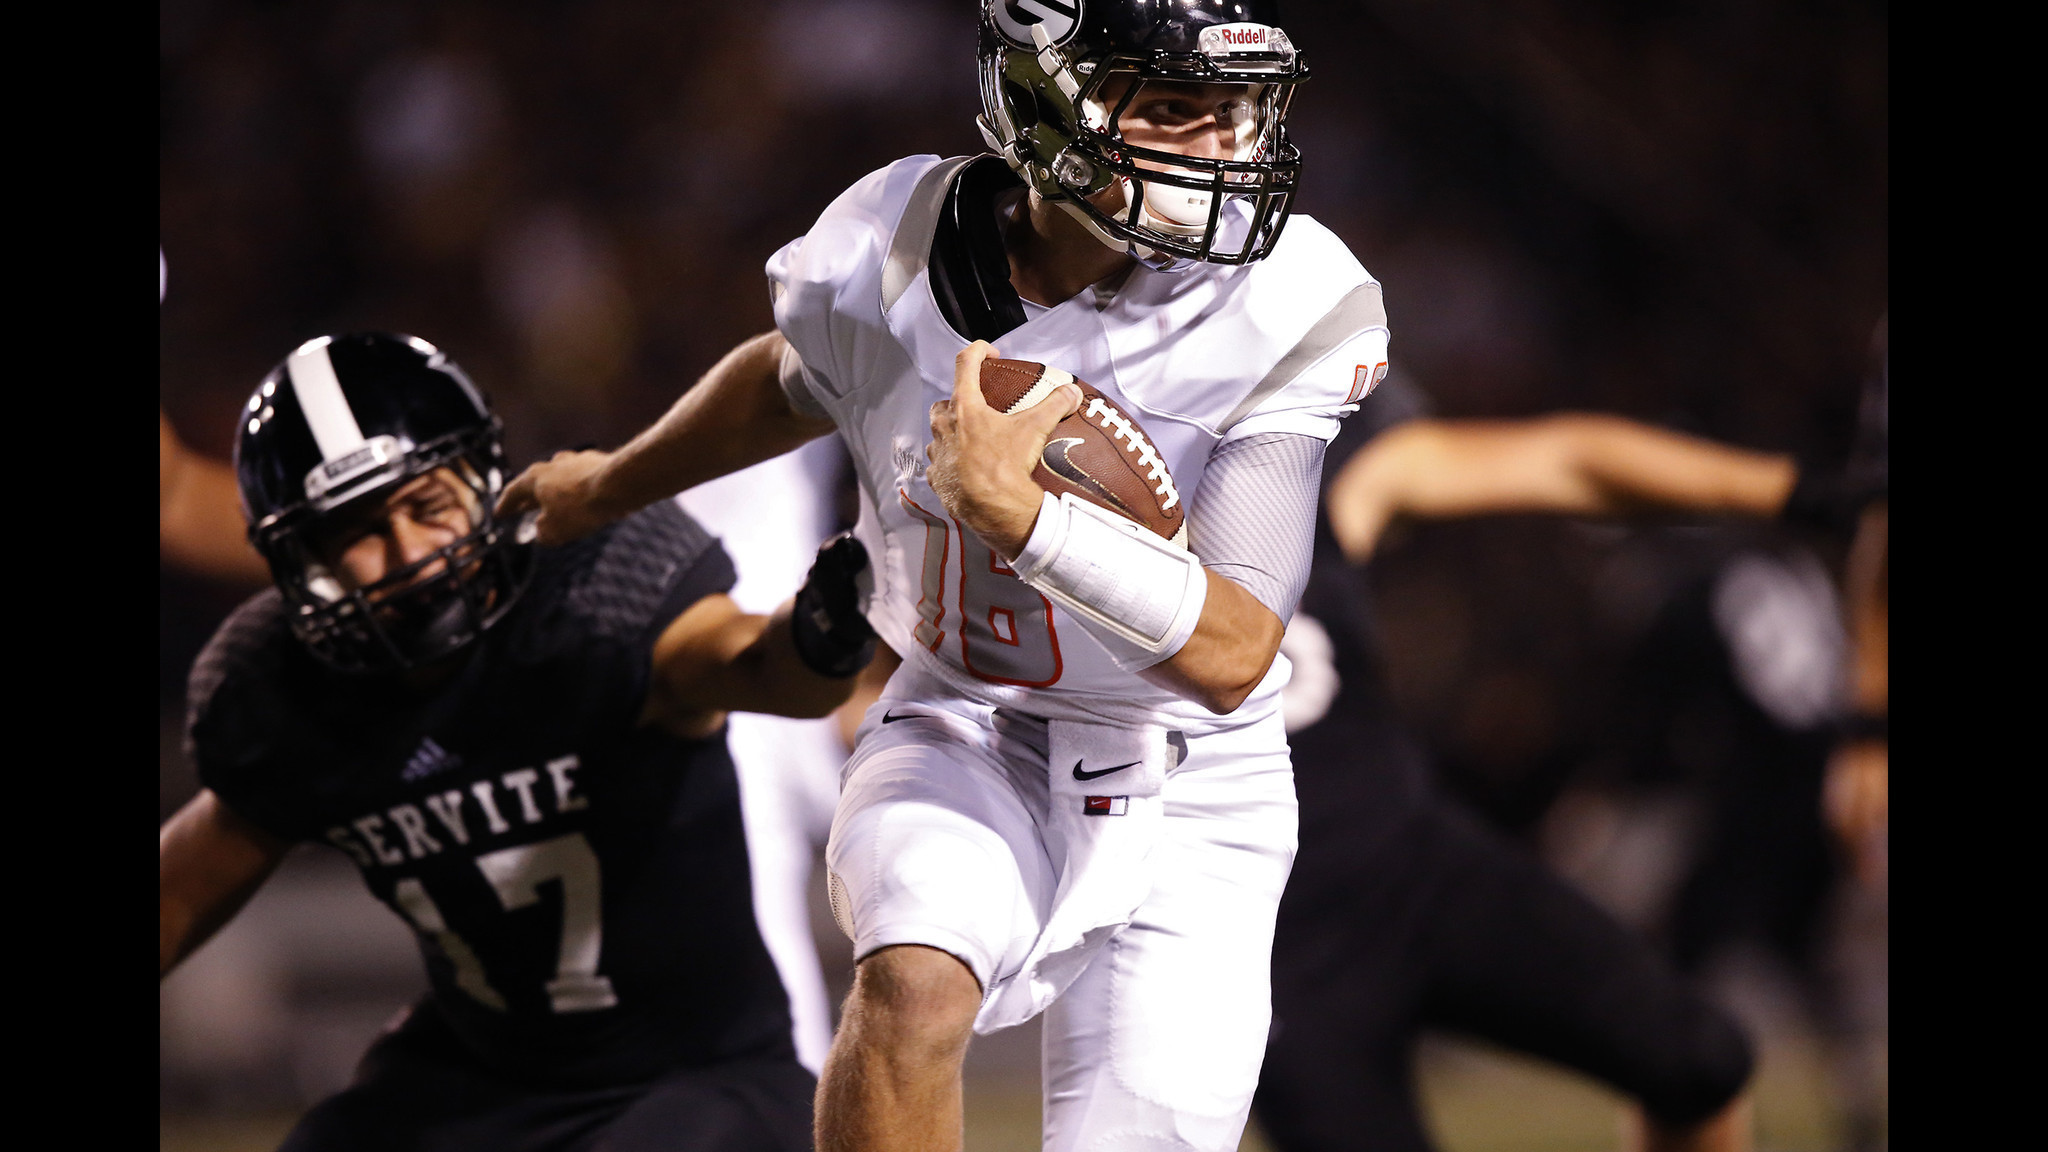 California transfers lead Bishop Gorman past Servite, 48-27